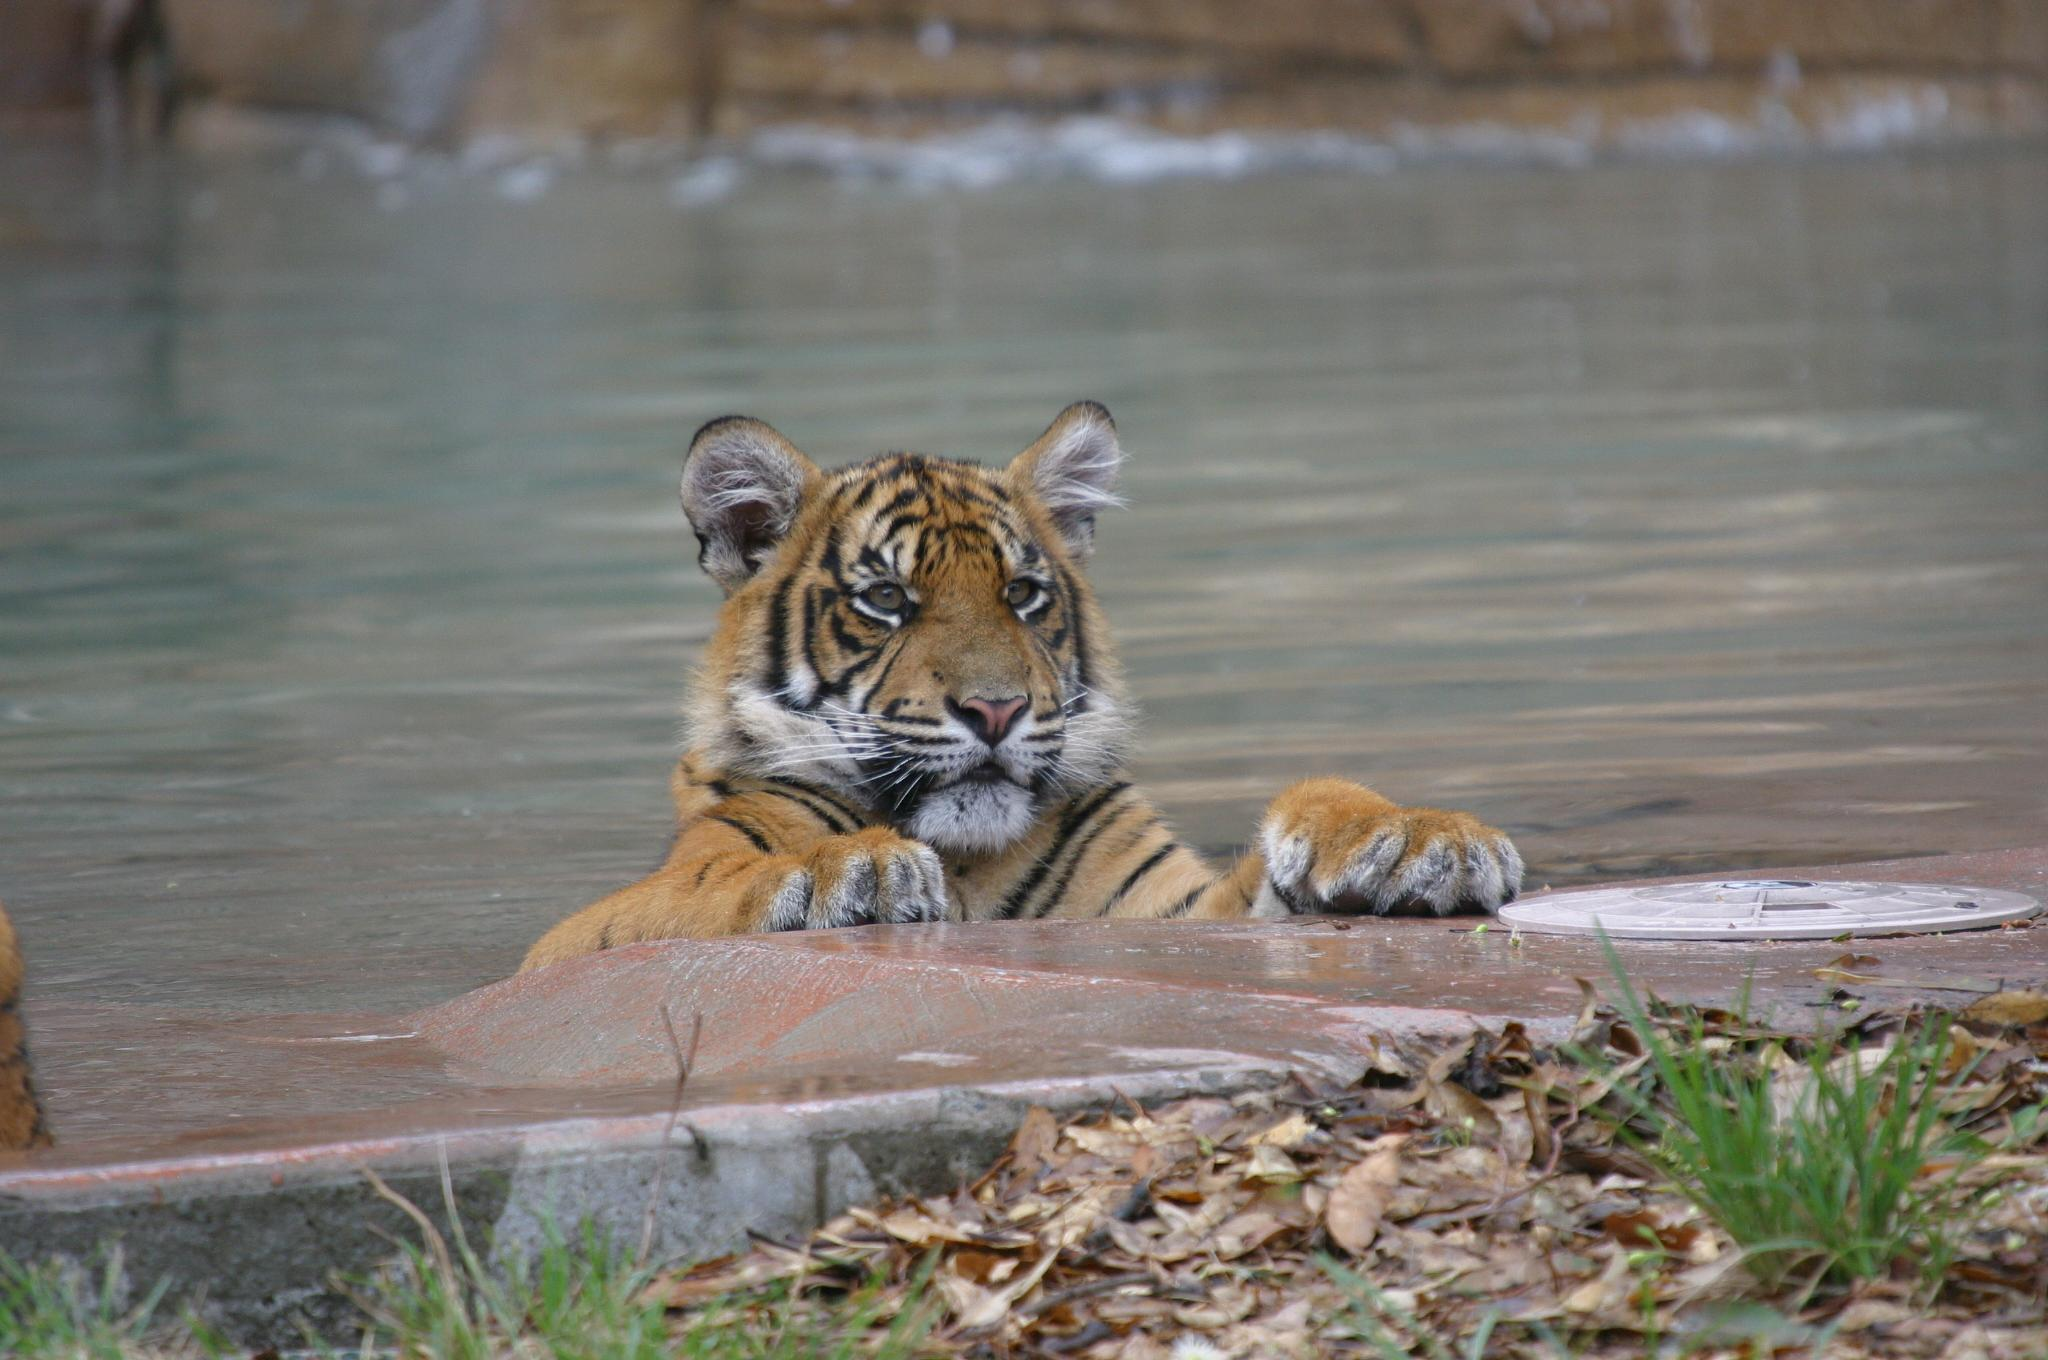 Tiger by michelle_cop_Photography